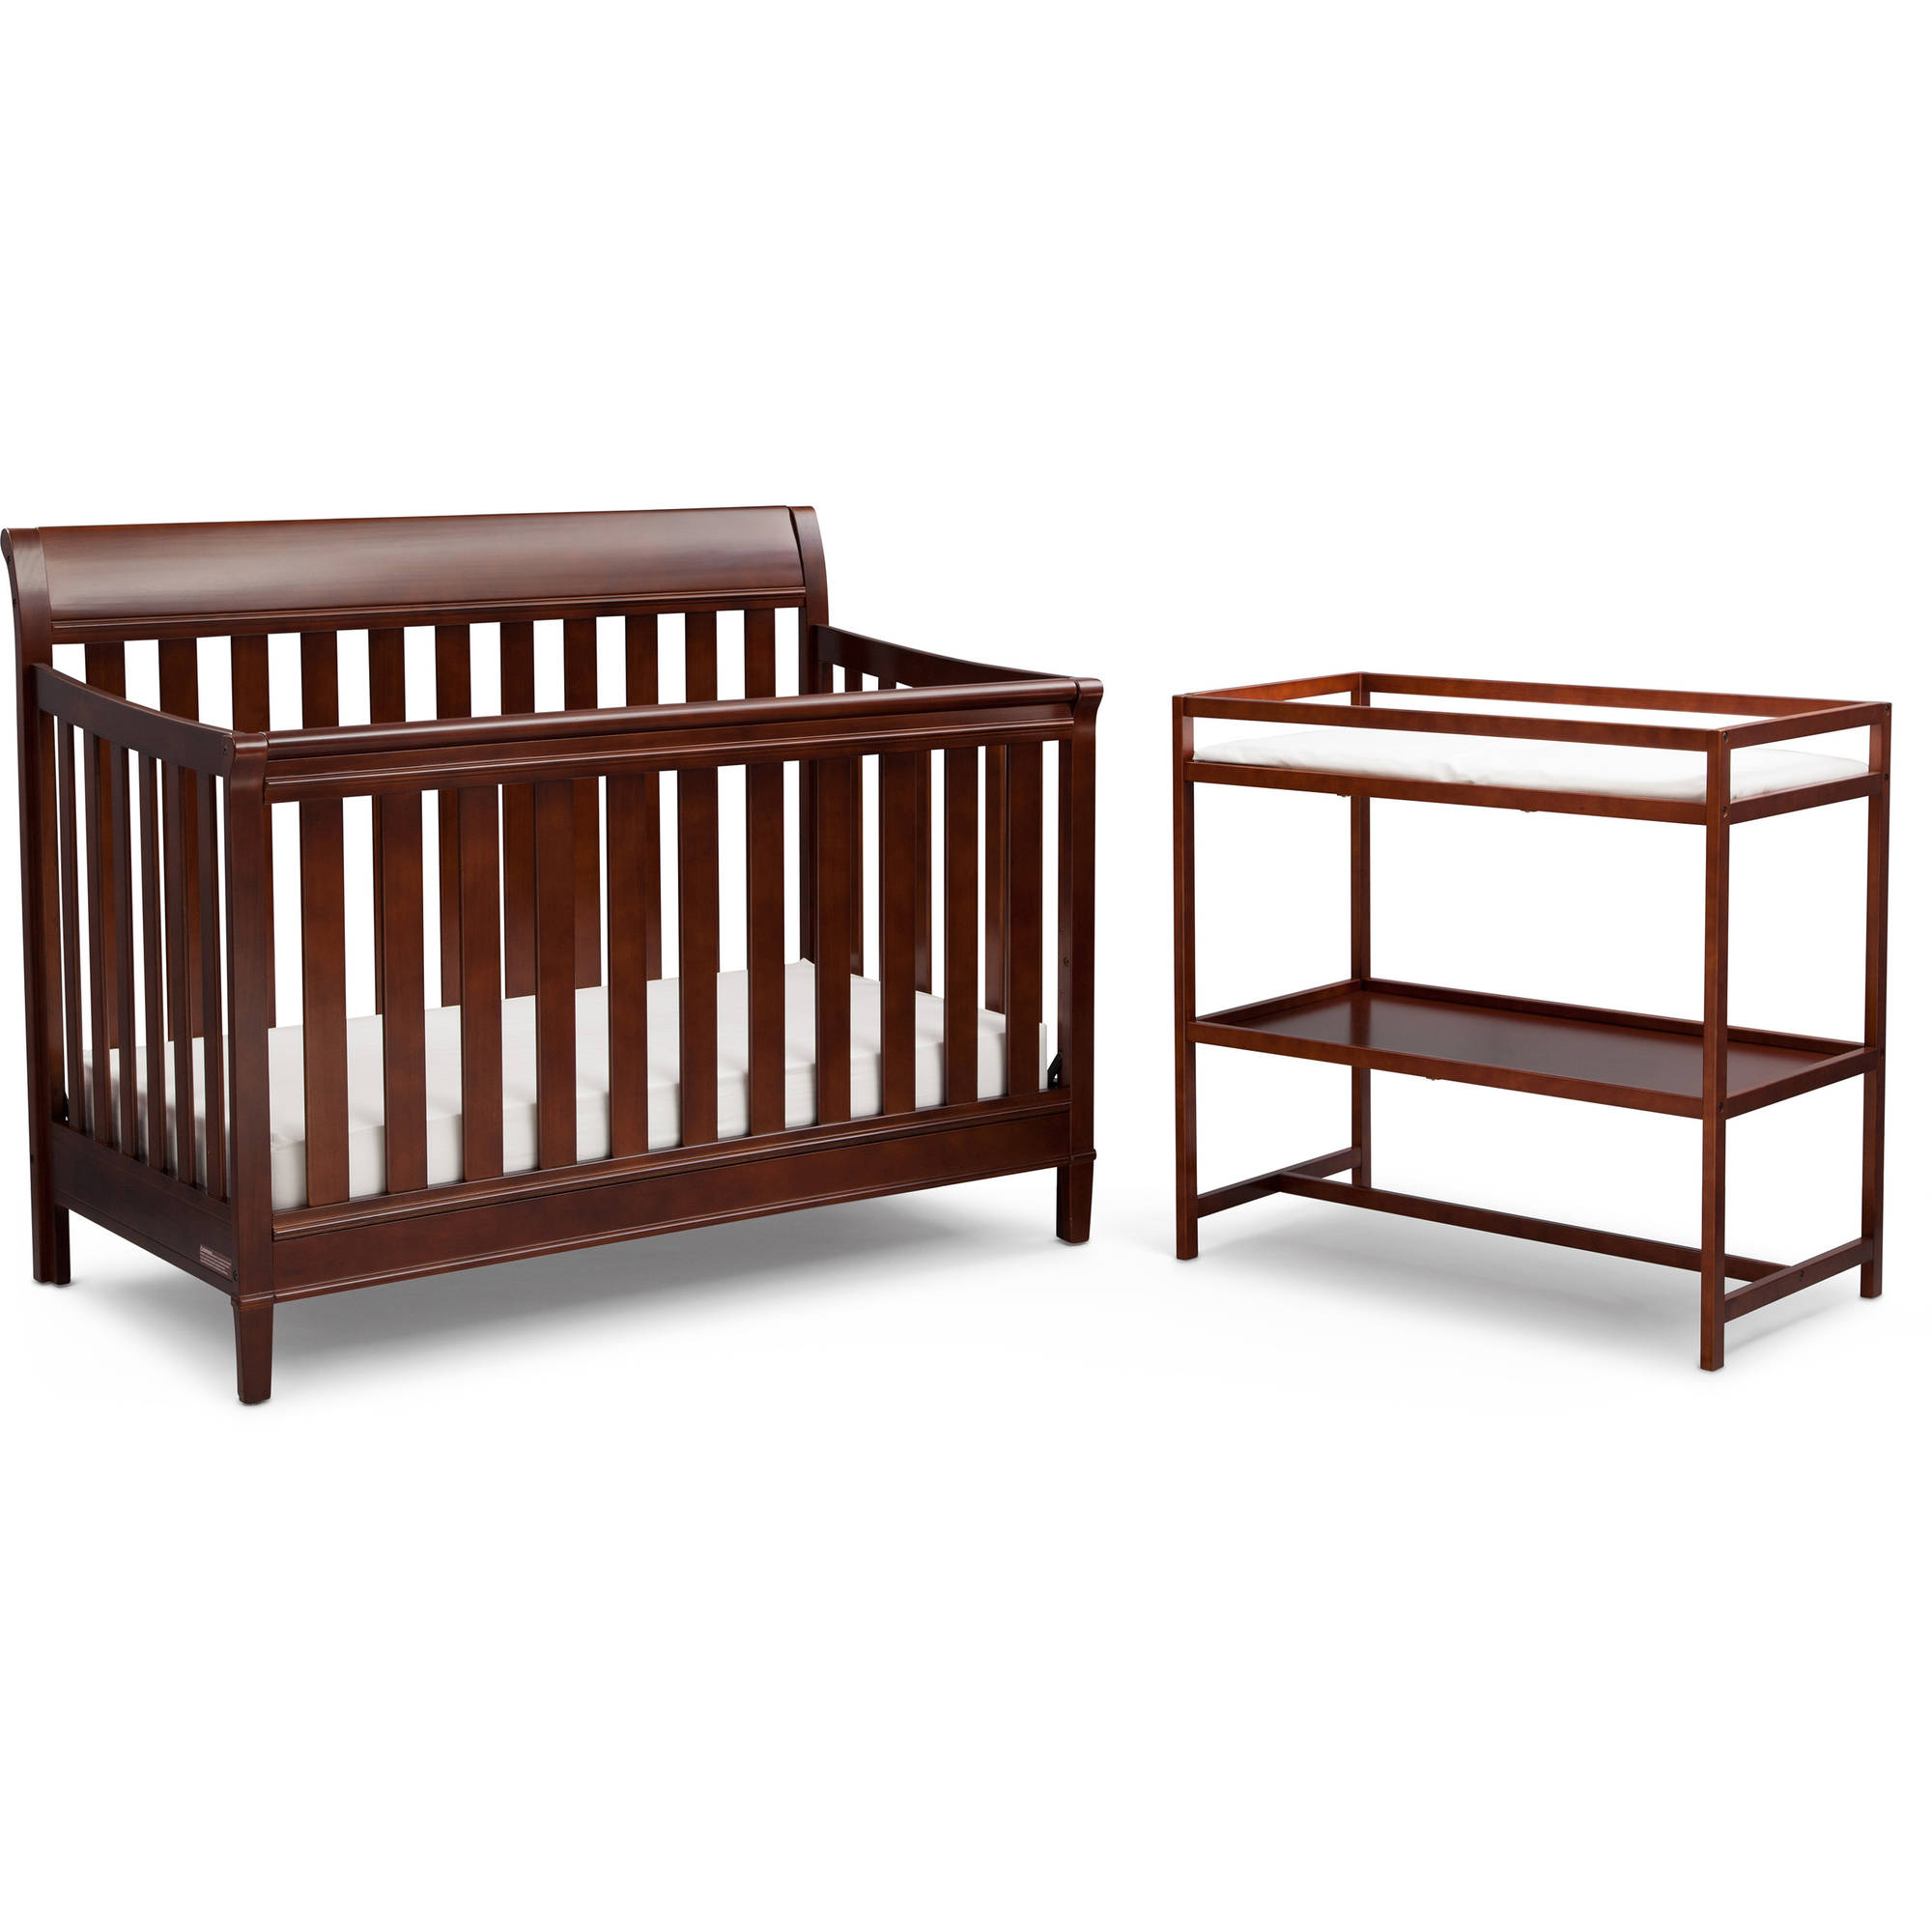 beautiful crib diy baby organizer with needs storage nappy delta combo unit corner walmart furniture dresser special espresso changing table small mounted wall